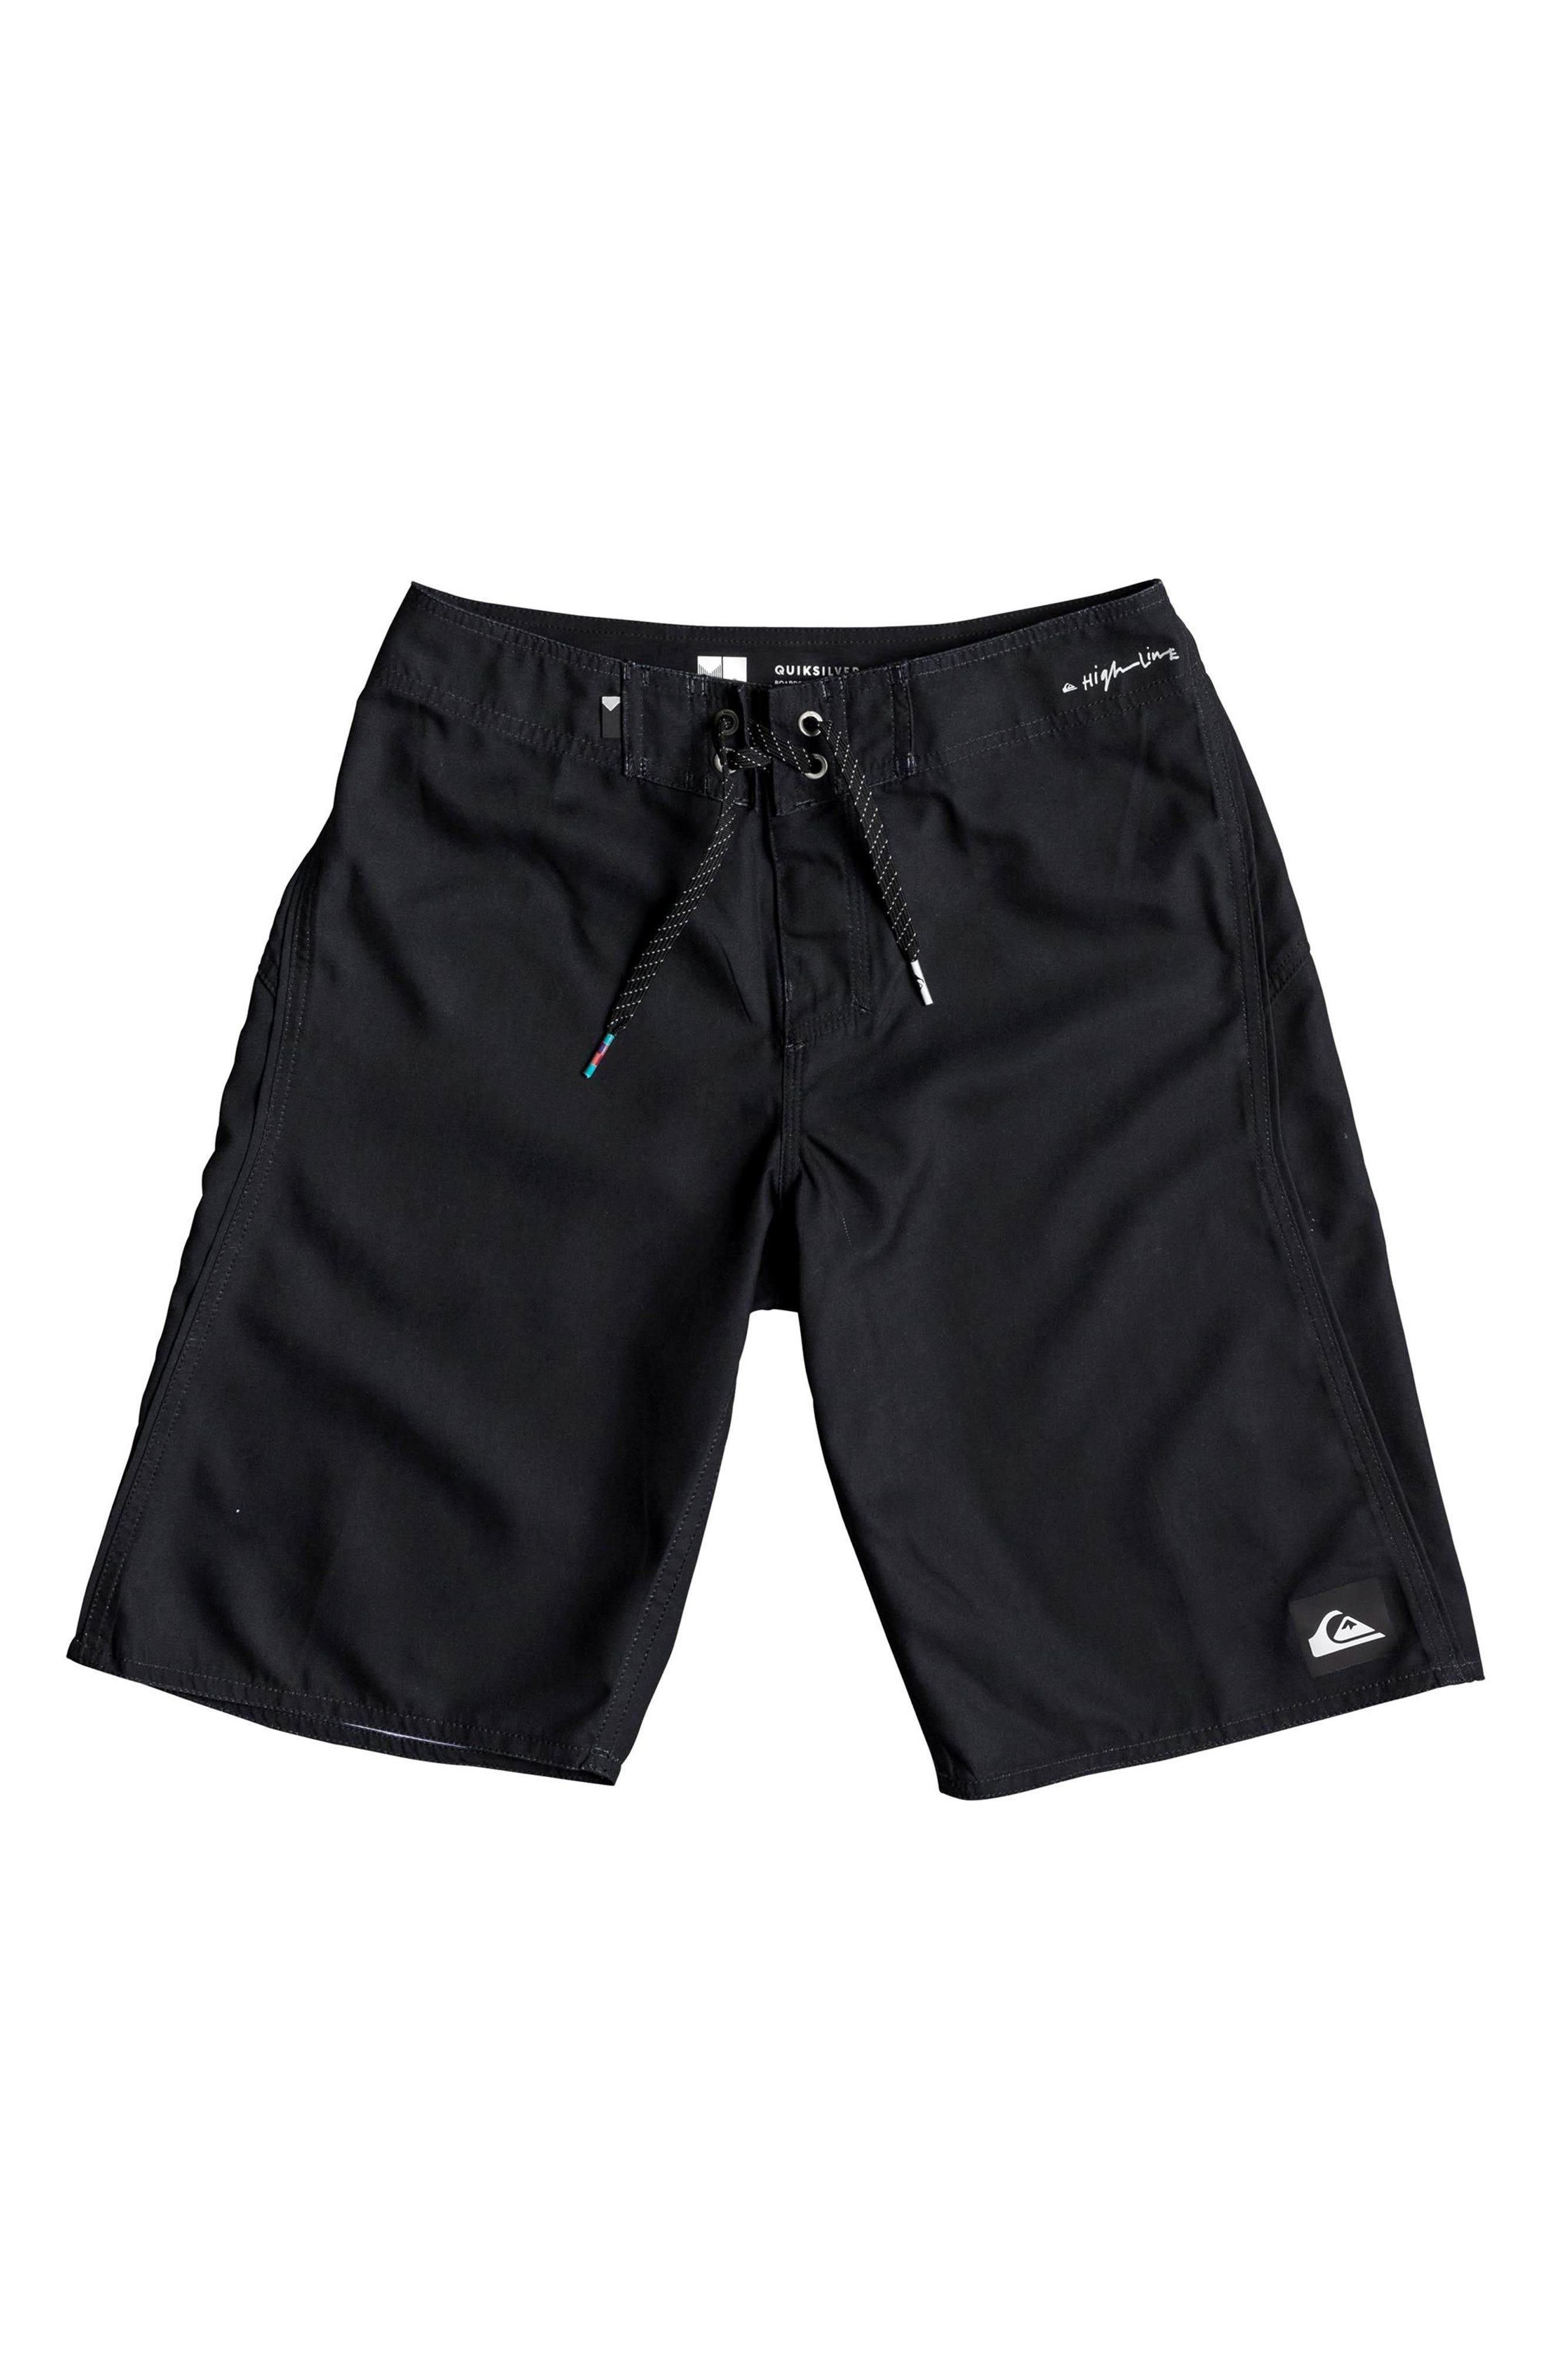 QUIKSILVER Highline Kaimana Board Shorts, Main, color, BLACK